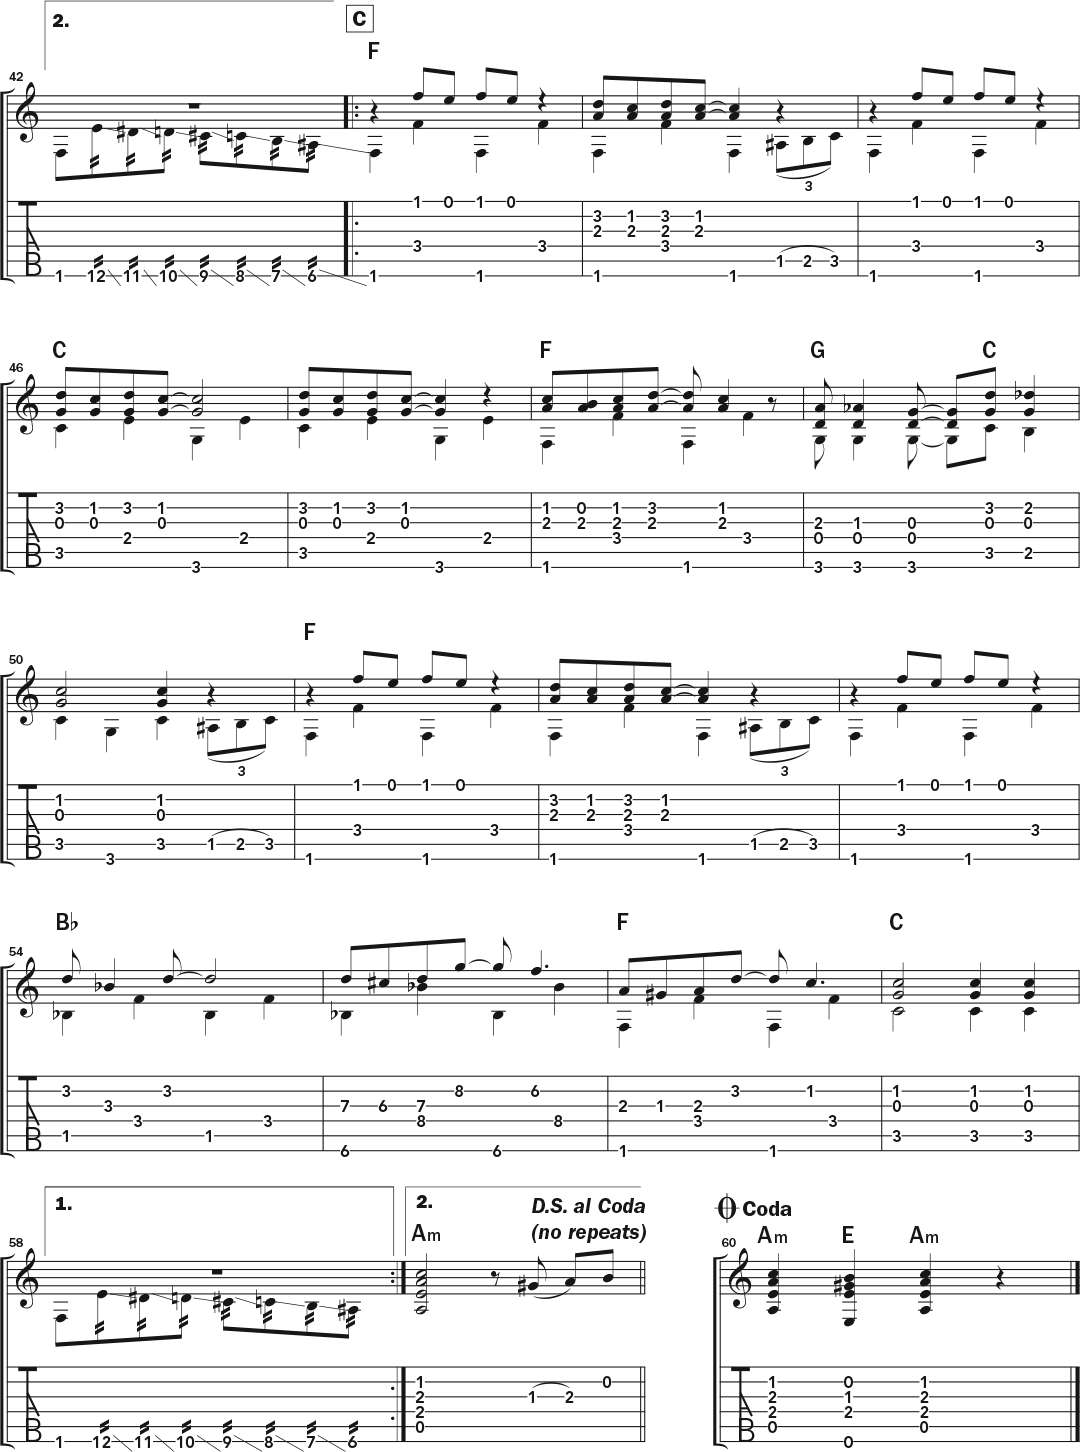 Learn To Play An Operatic Rag An Accordion Gem For Guitar